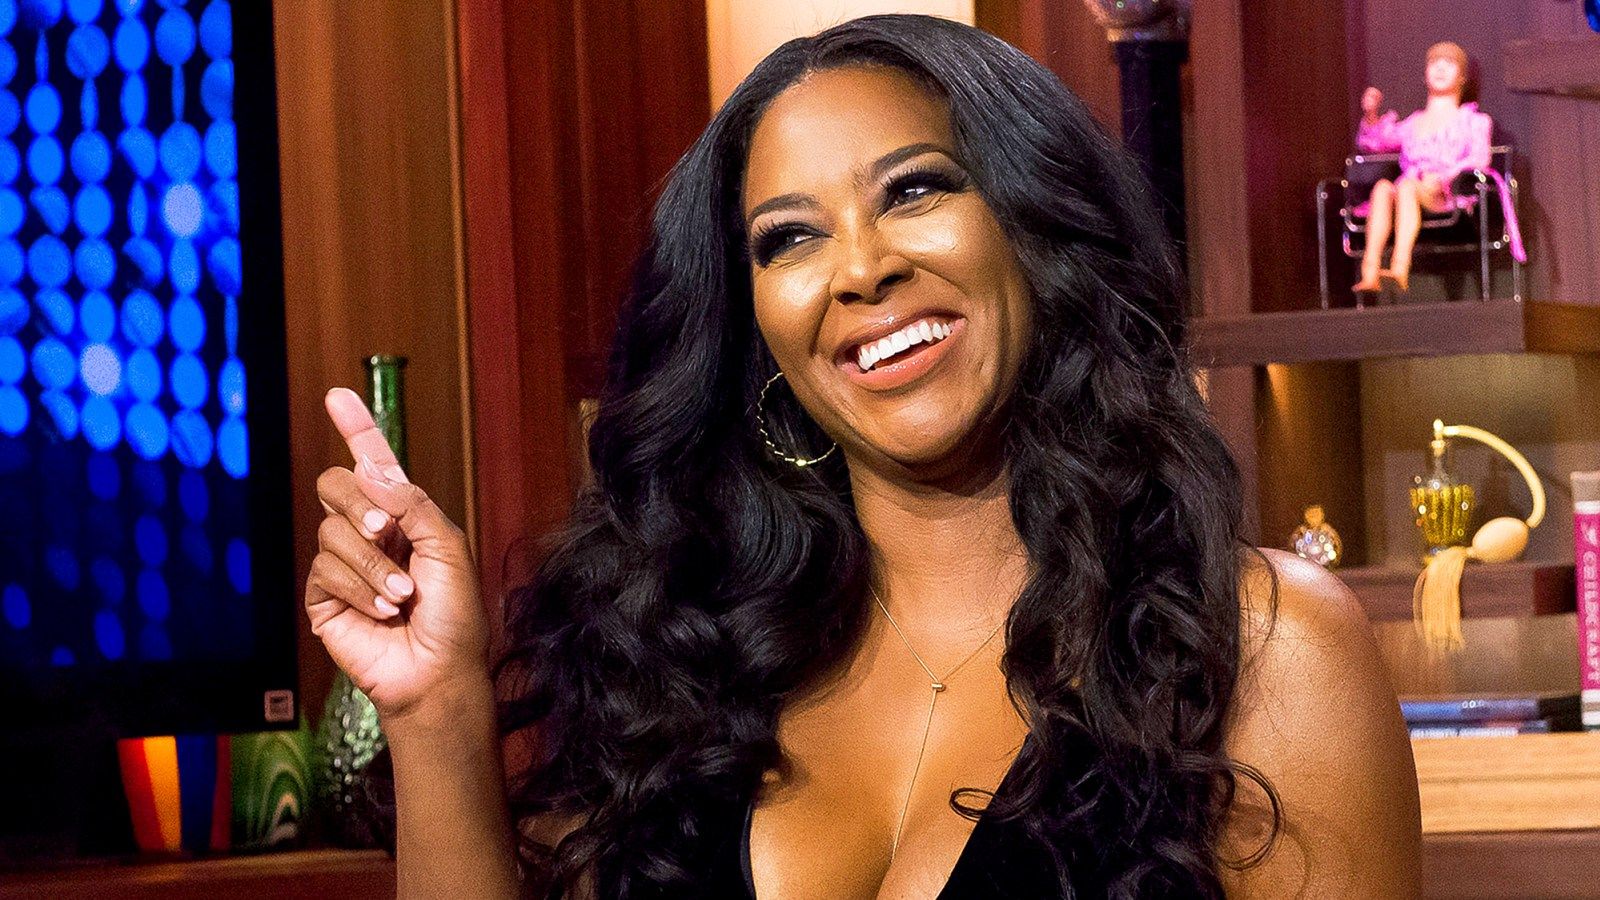 Kenya Moore Shares A Throwback Photo That Impressed Fans - She's Giving Them Diana Ross Vibes